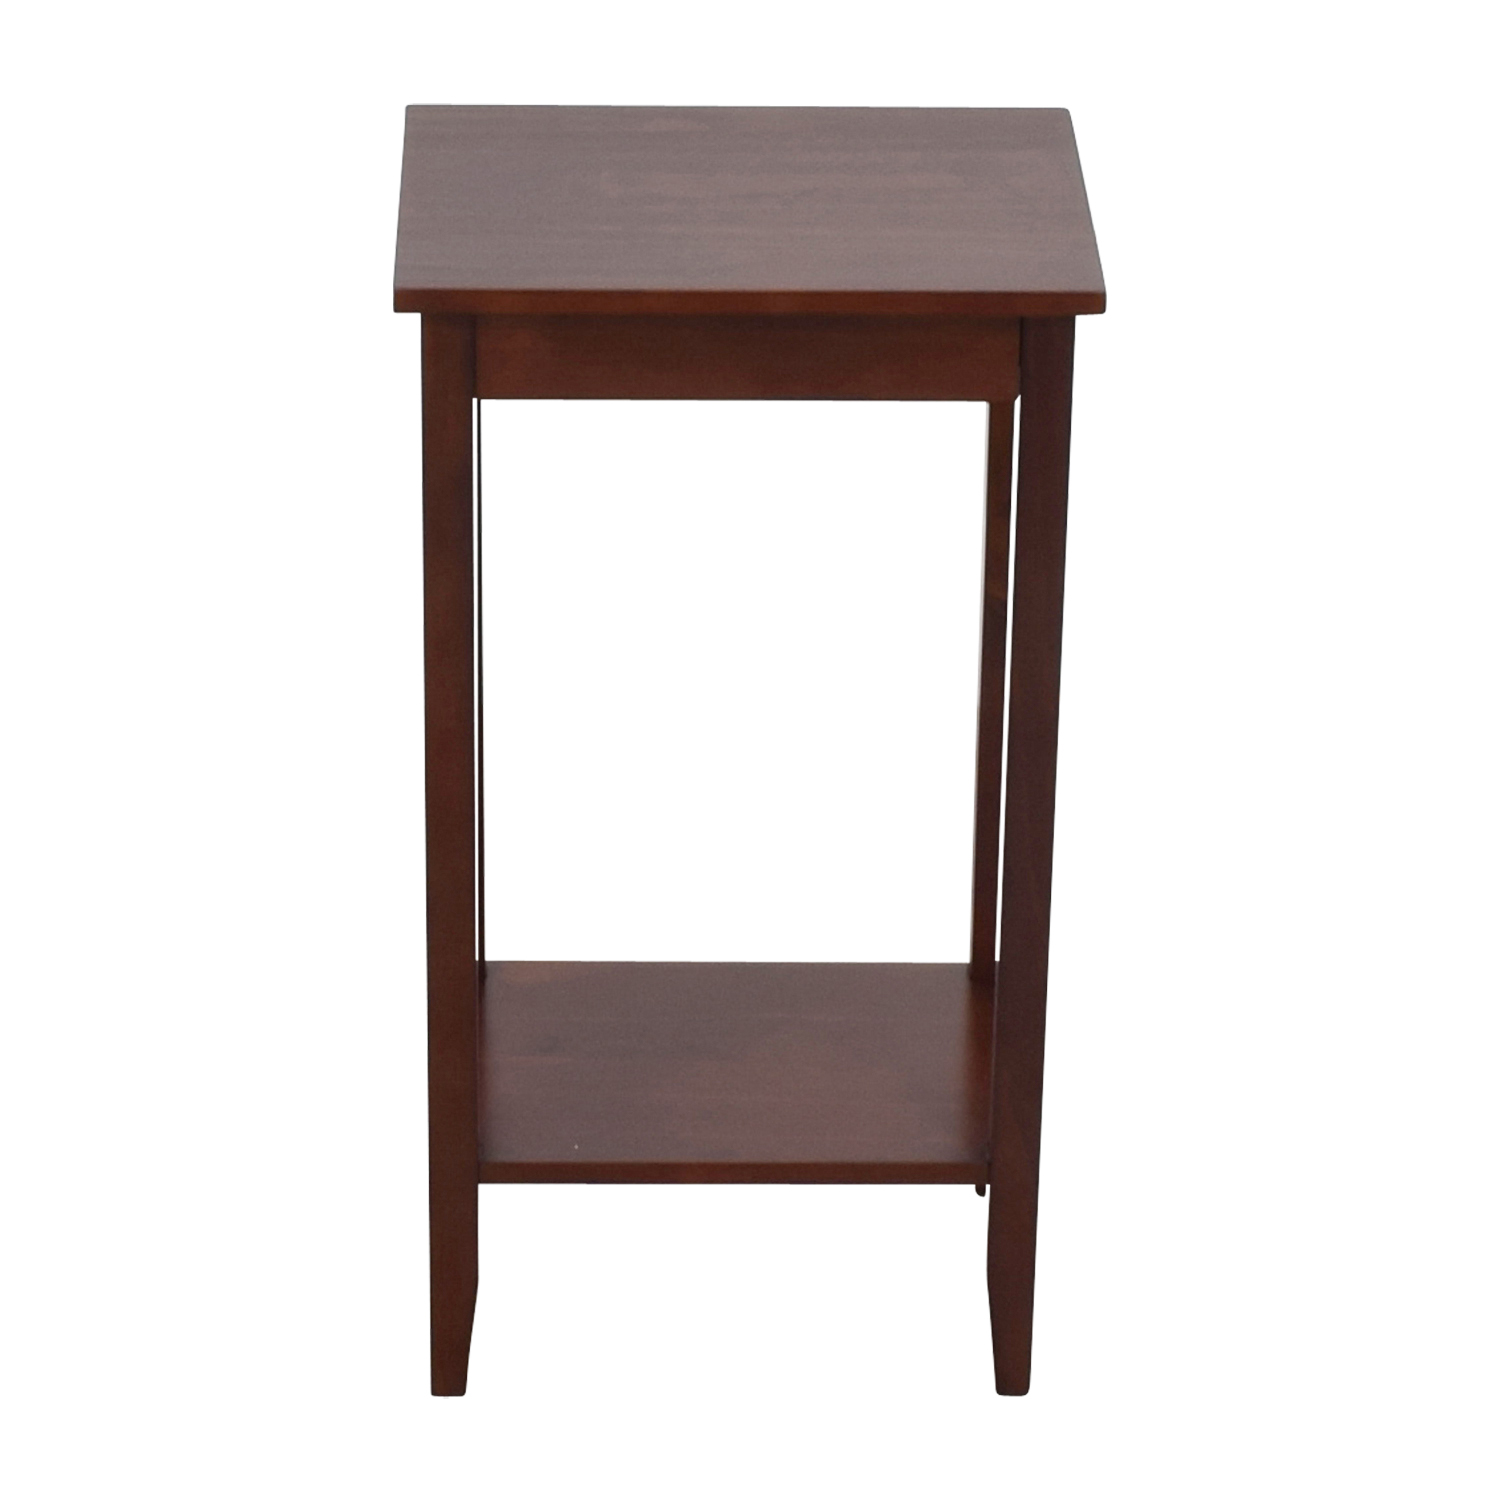 Tall Narrow Side Table second hand